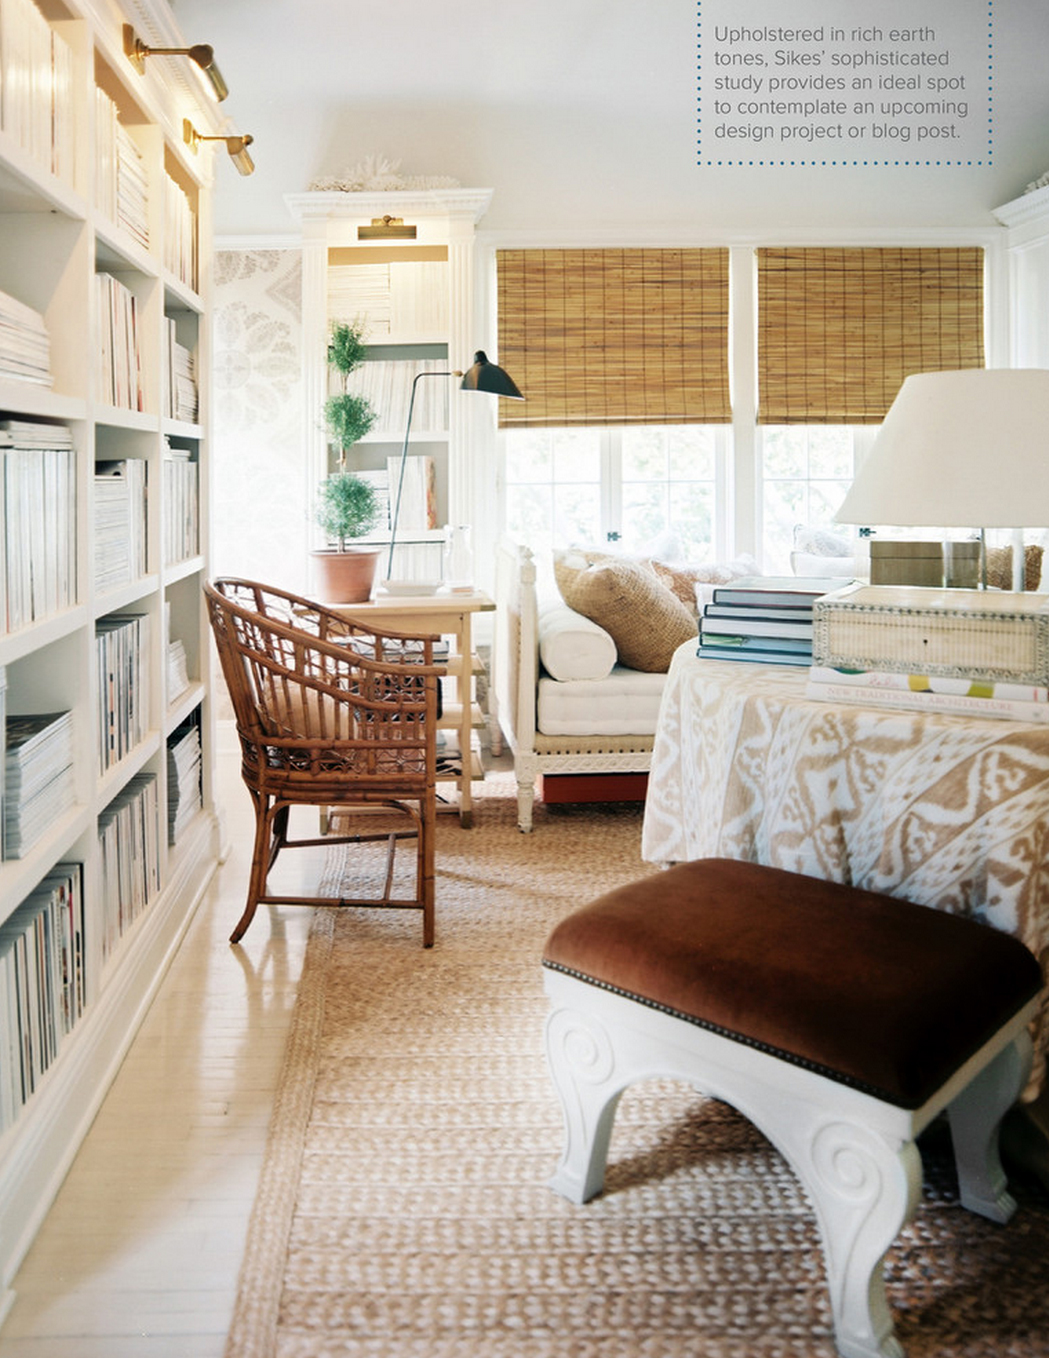 How much do interior designers make in california - How much for an interior designer ...